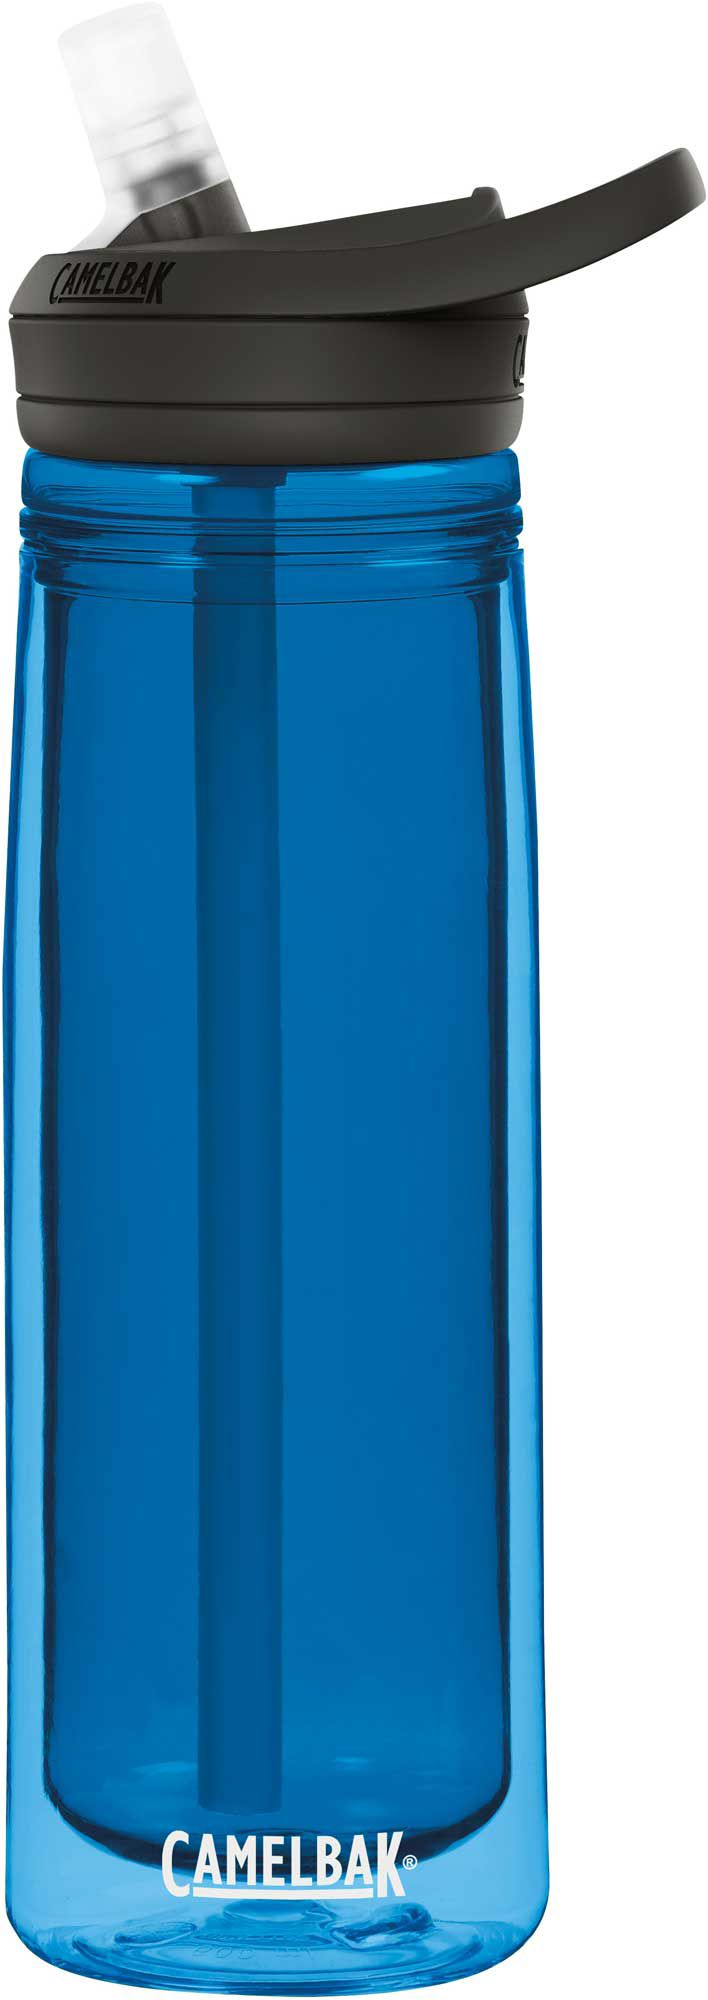 CamelBak Eddy+ 20 oz. Insulated Water Bottle